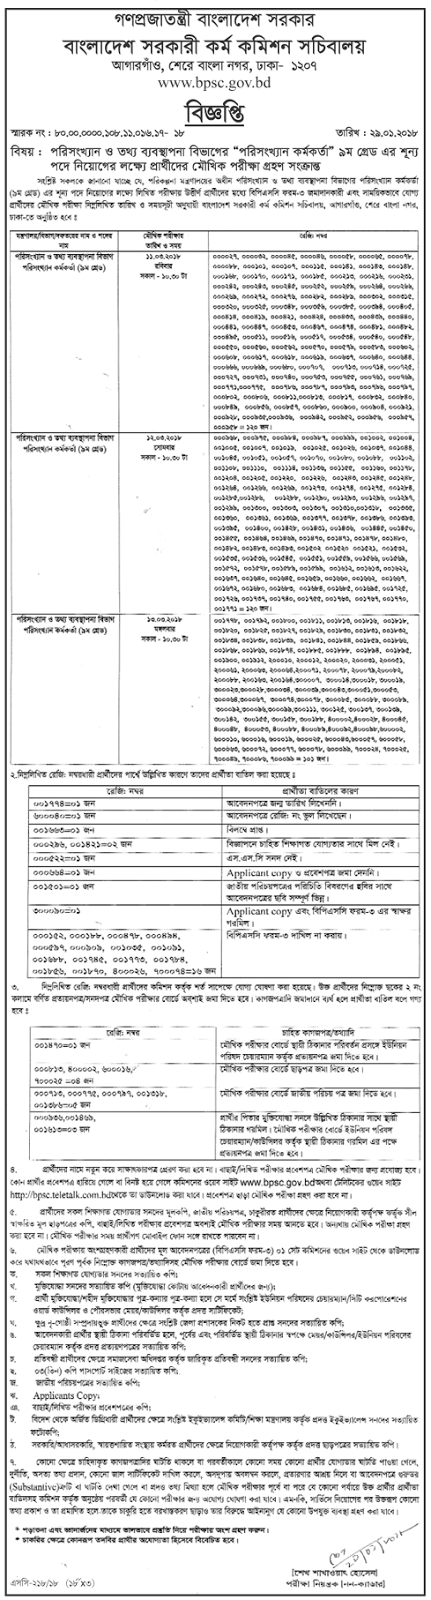 Statistics and Information Management Department (পরিসংখ্যান ও তথ্য ব্যবস্থাপনা বিভাগ) under 9th Grade 'Statistics Officer' Viva Exam Date, Time And Seat Plan